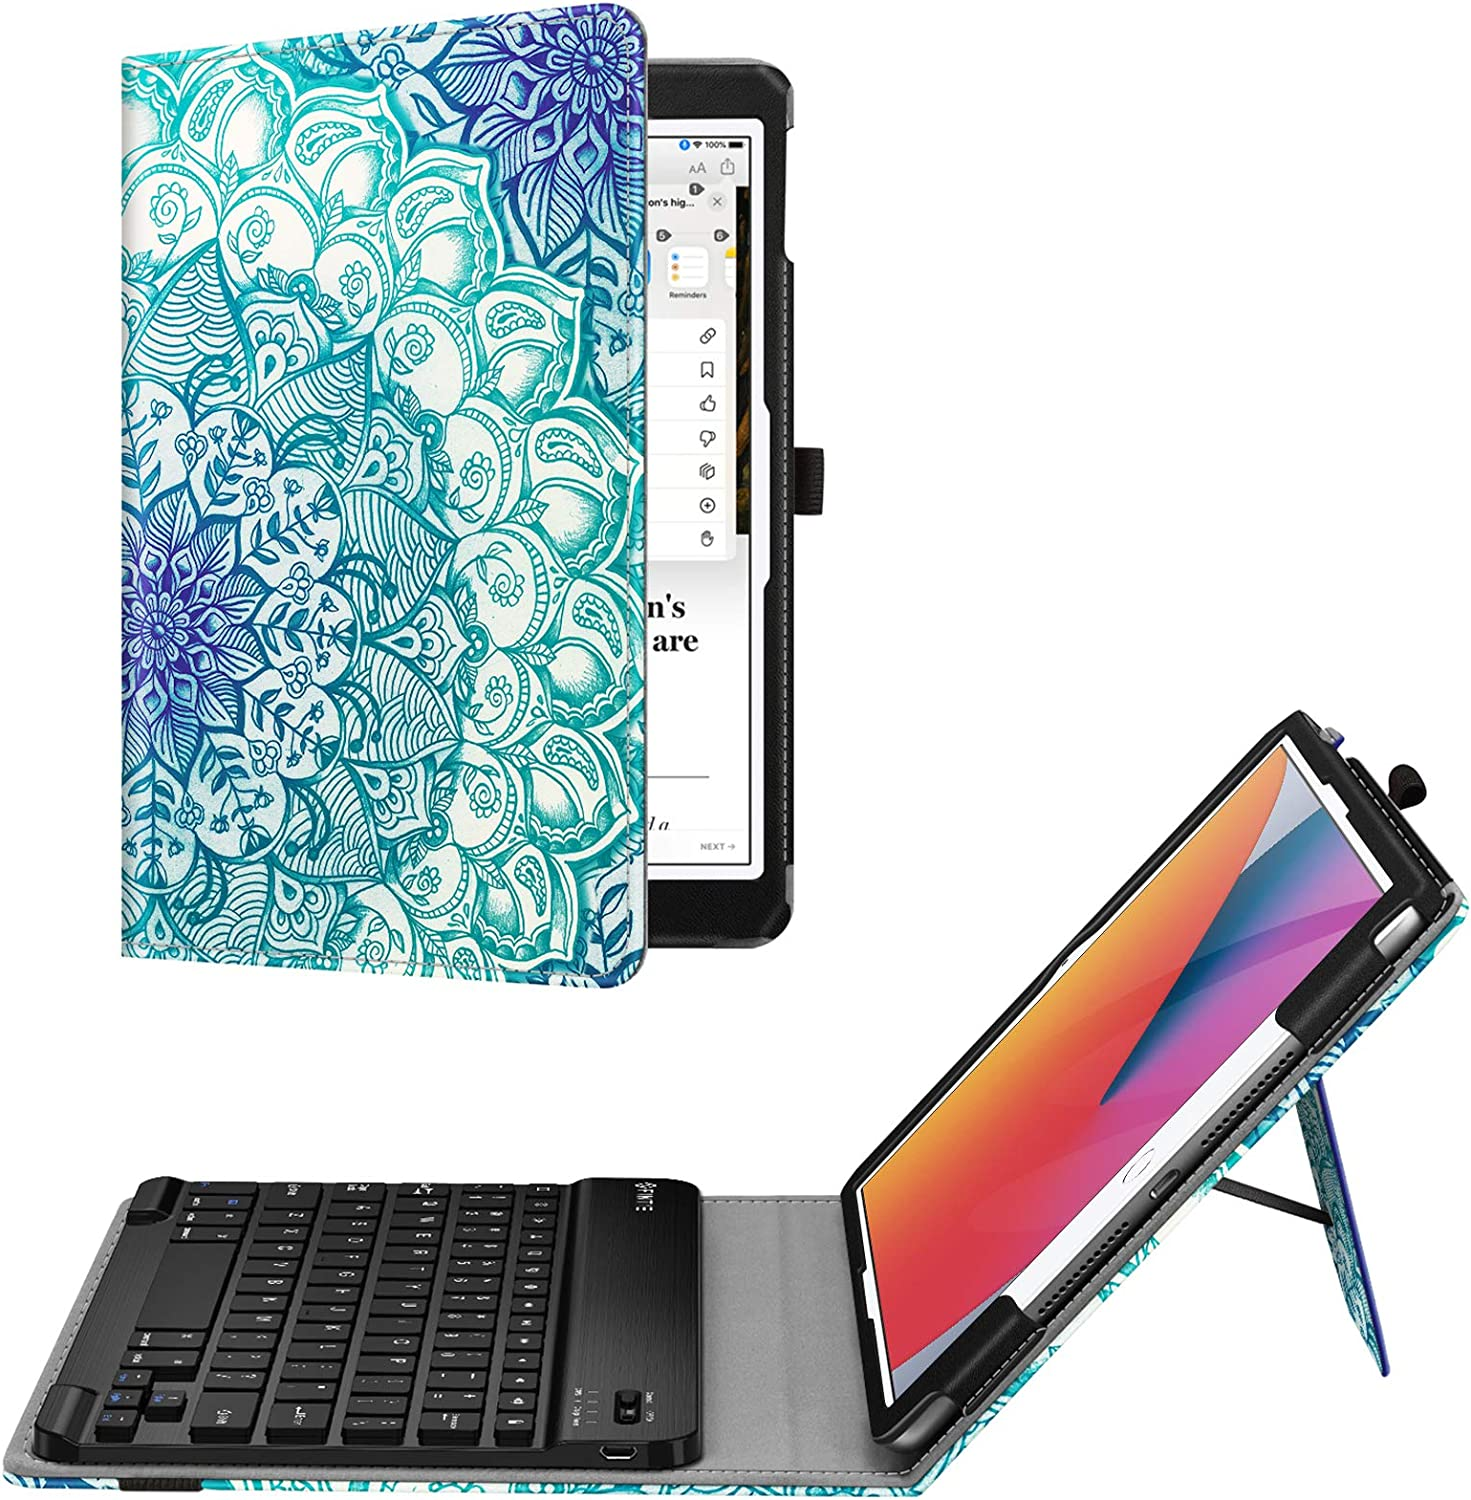 Fintie Keyboard Case for New iPad 8th Gen (2020) / 7th Generation (2019) 10.2 Inch - Premium PU Leather Folio Smart Stand Back Cover with Removable Wireless Bluetooth Keyboard, Emerald Illusions